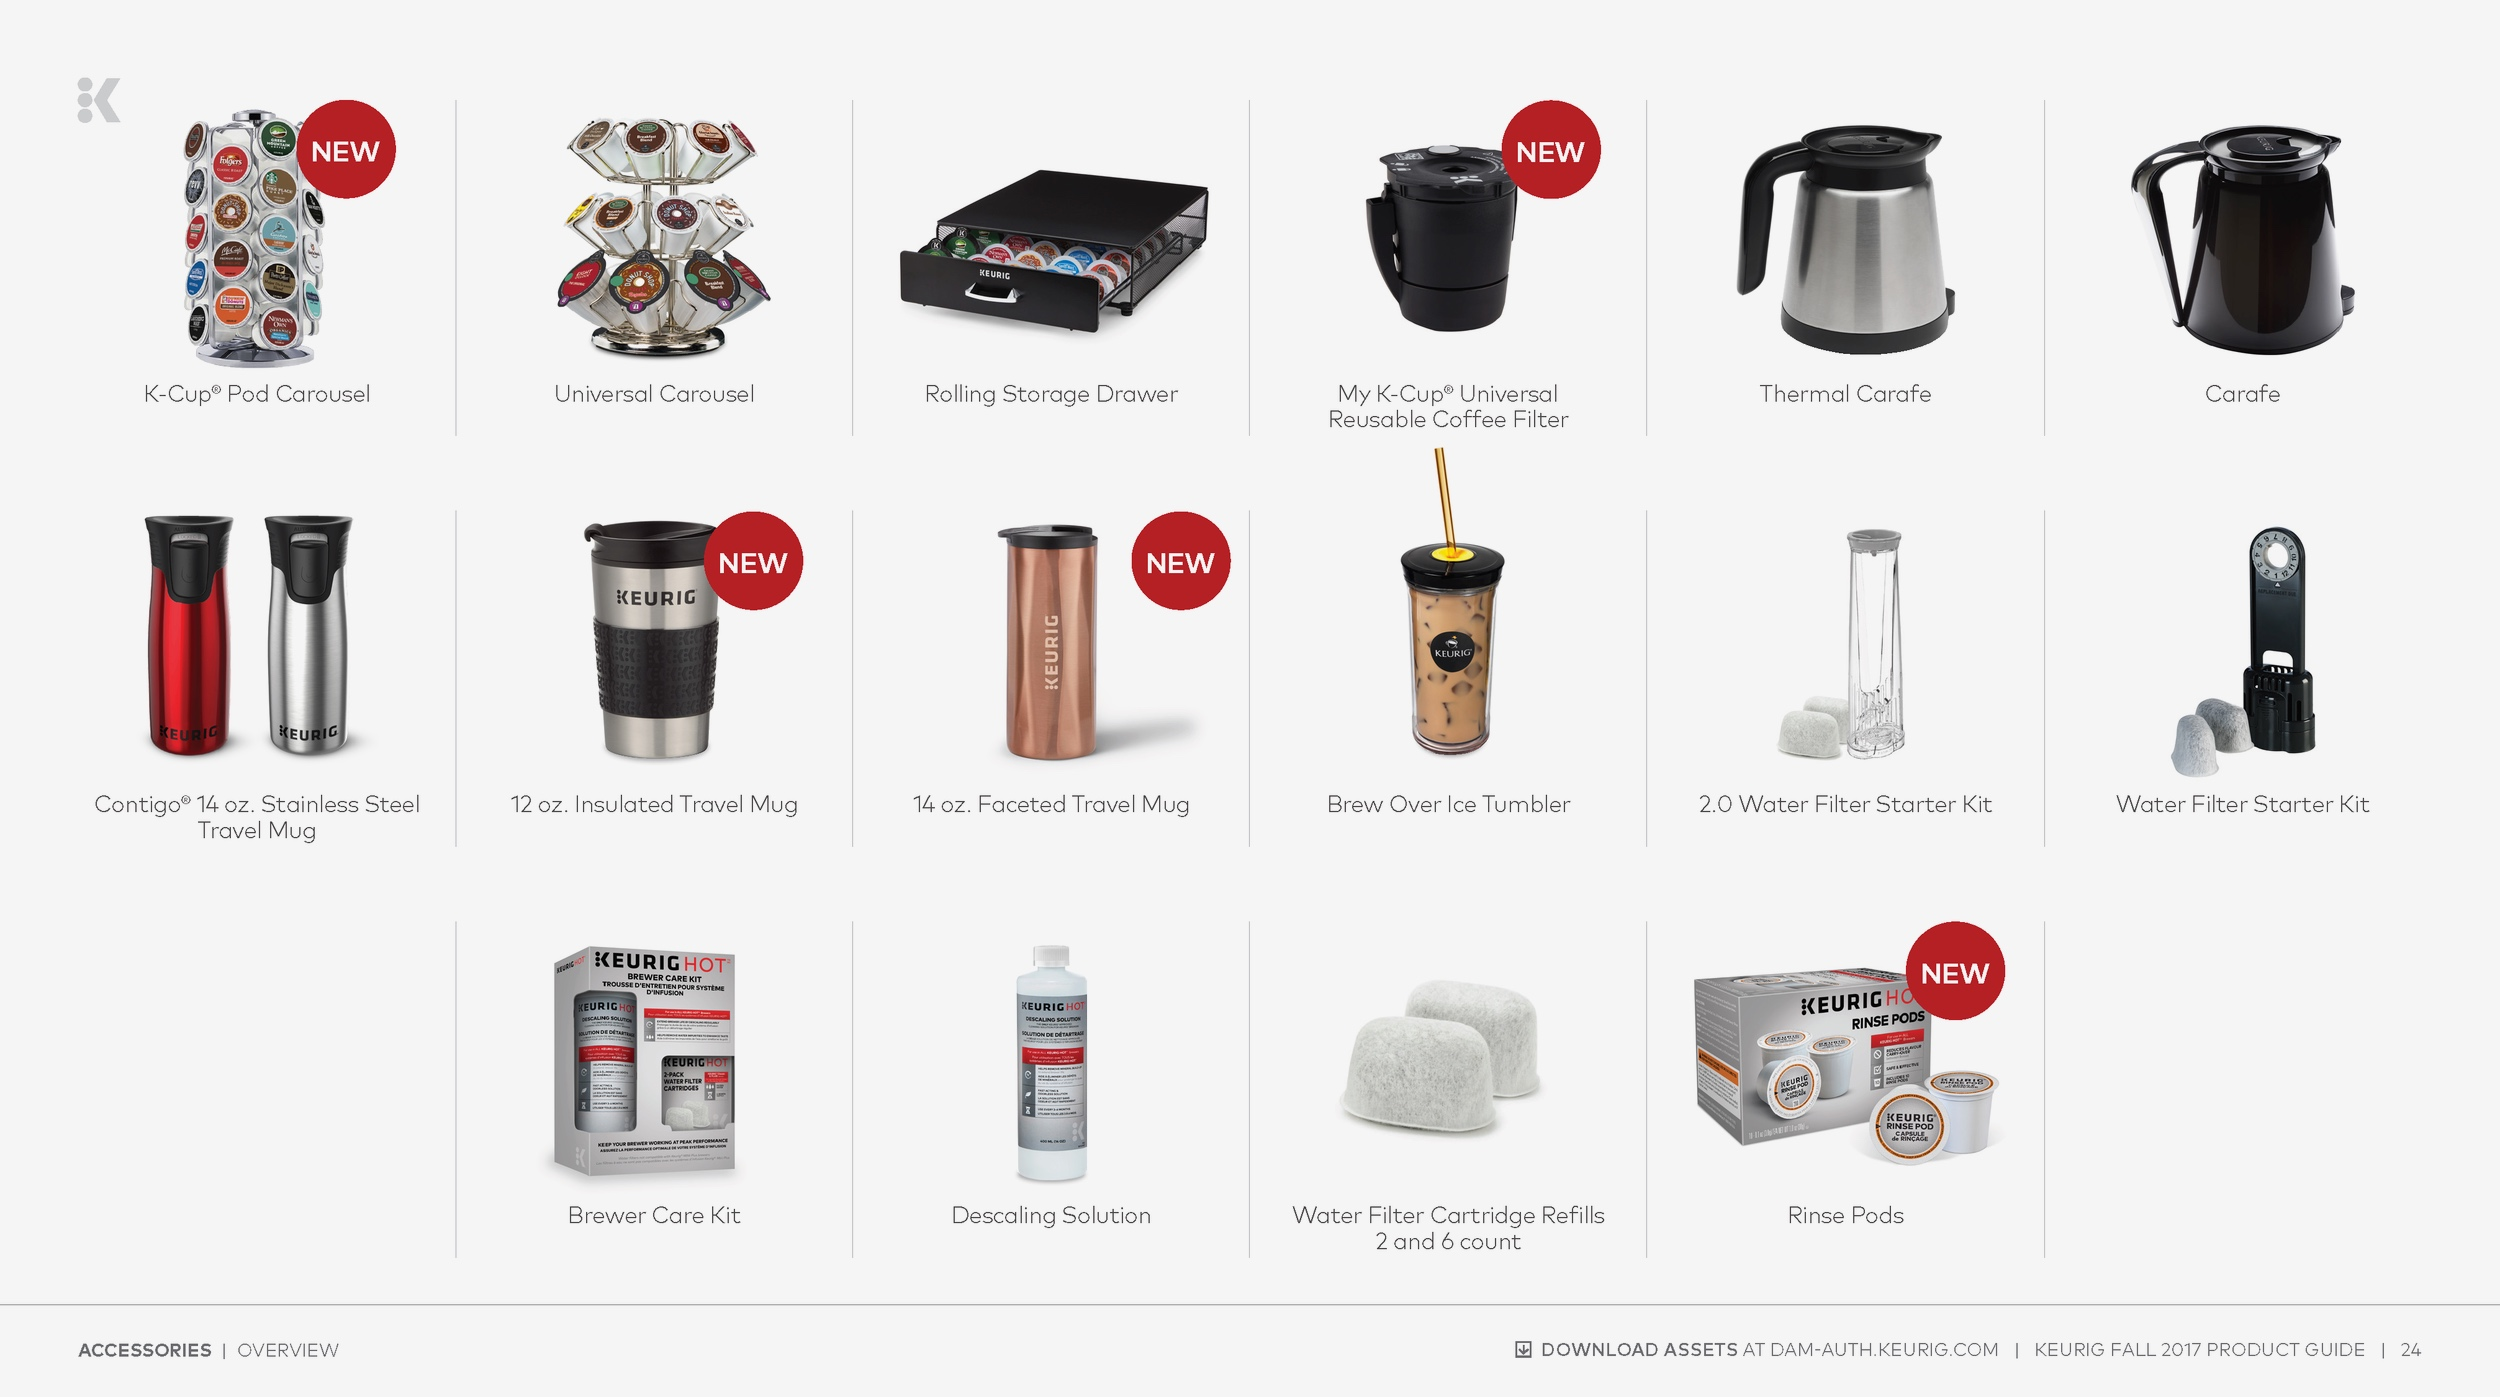 keurig_product_guide_F17_R8_Page_24.png